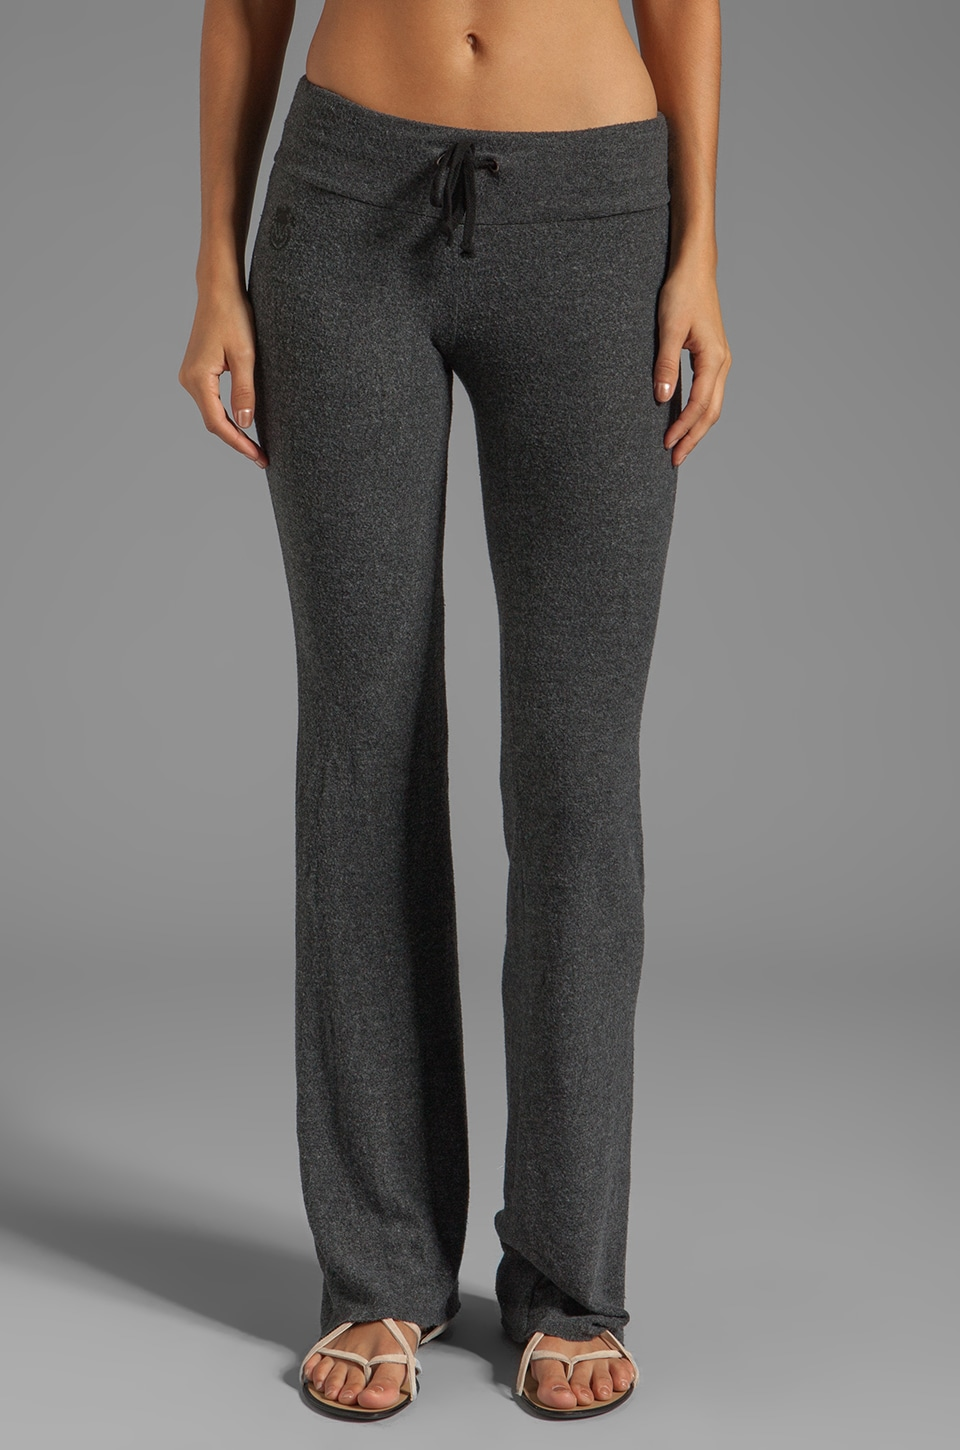 Wildfox Couture Tennis Club Sweat Pants in Clean Black